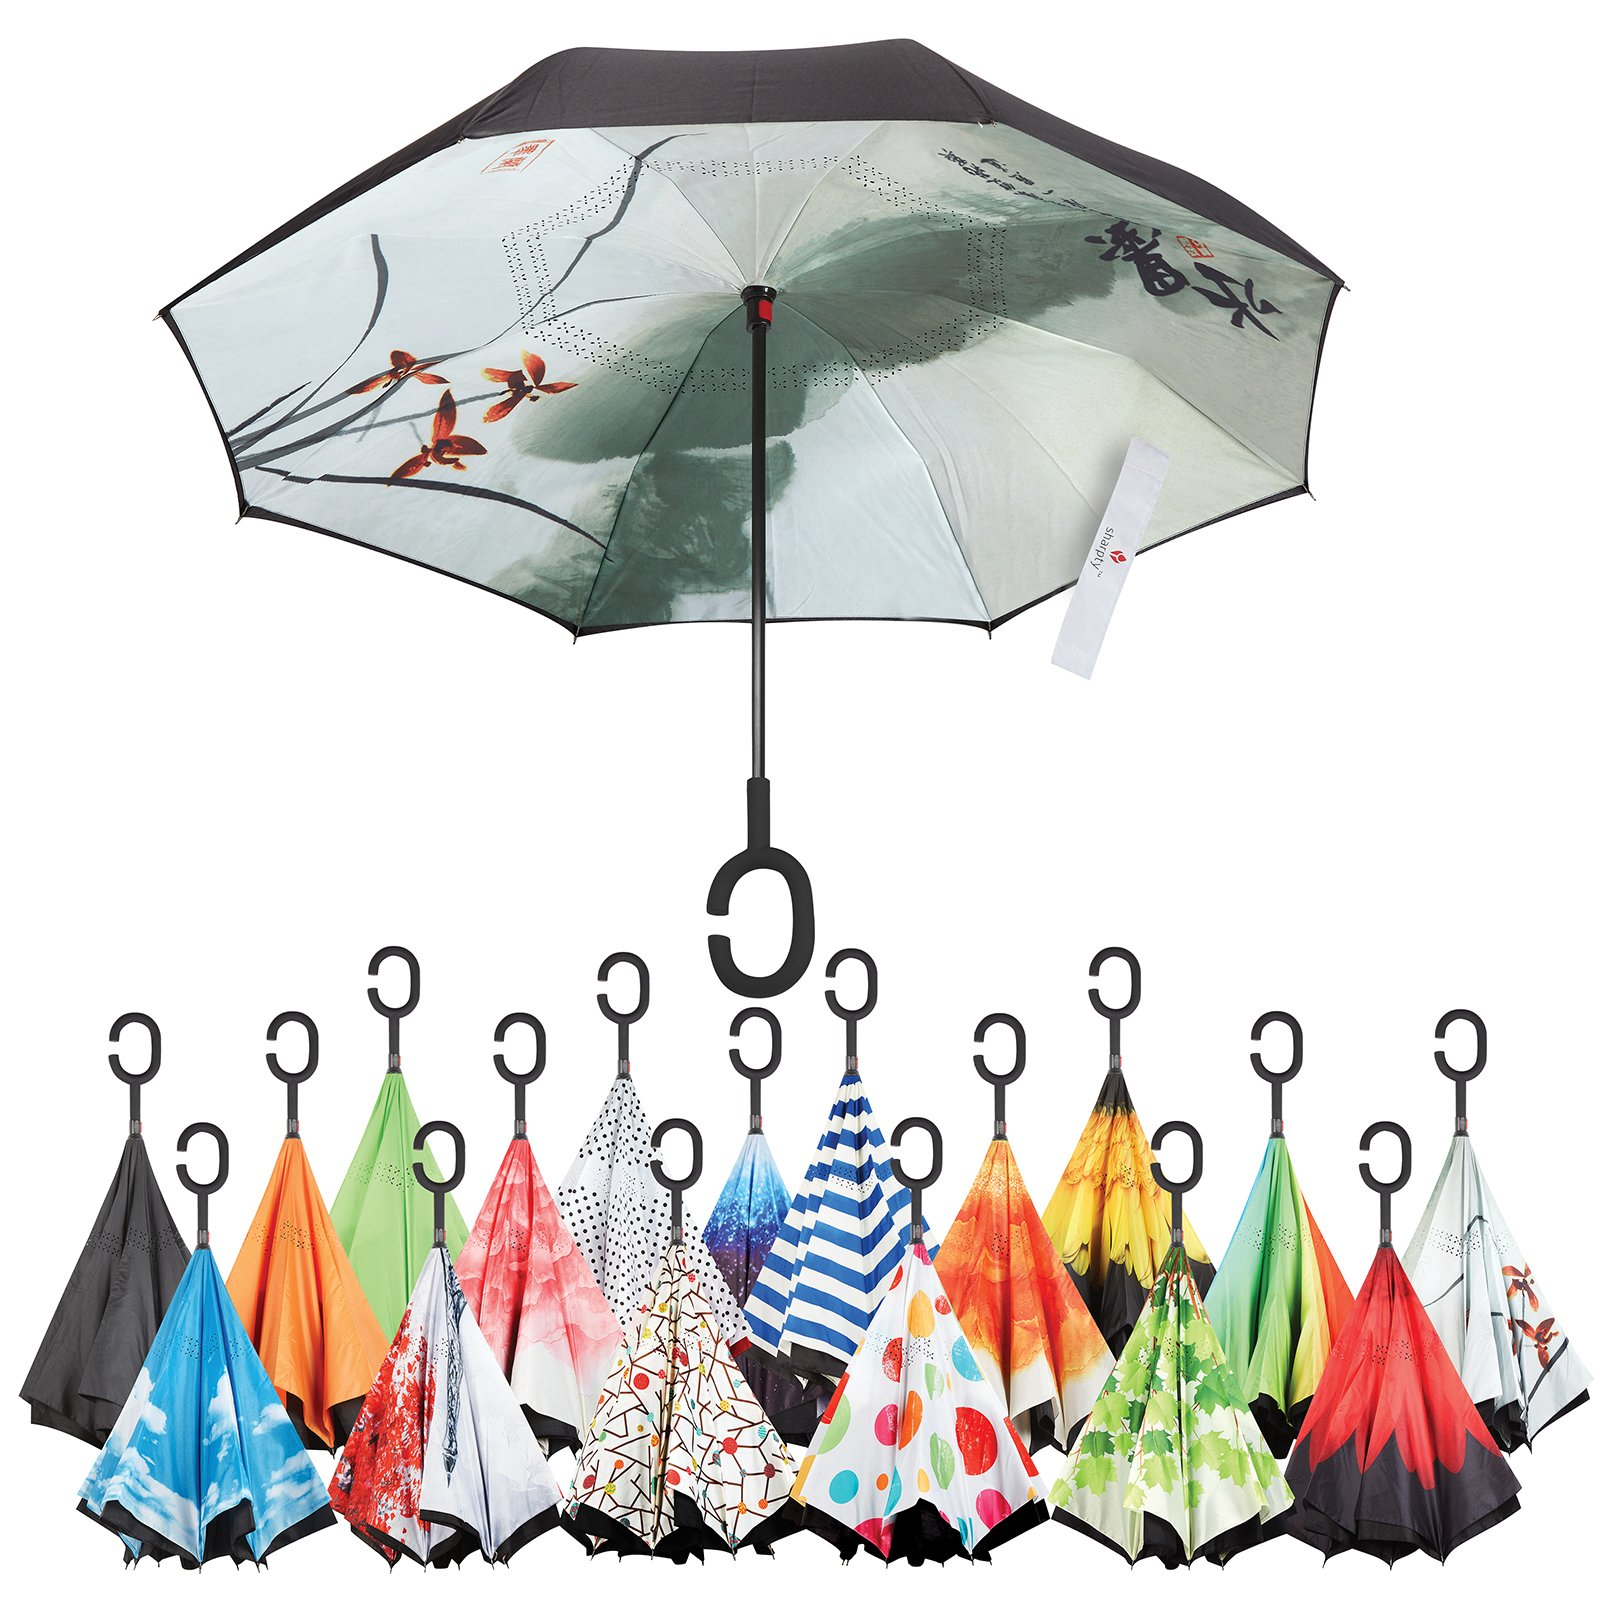 Inverted Umbrella, Best Windproof Umbrella, Cars Reverse Umbrella, Beautiful Rain Umbrella with UV Protection, Upside Down Umbrella With C-Shaped Handle and Carrying Bag (Chinese ink painting)